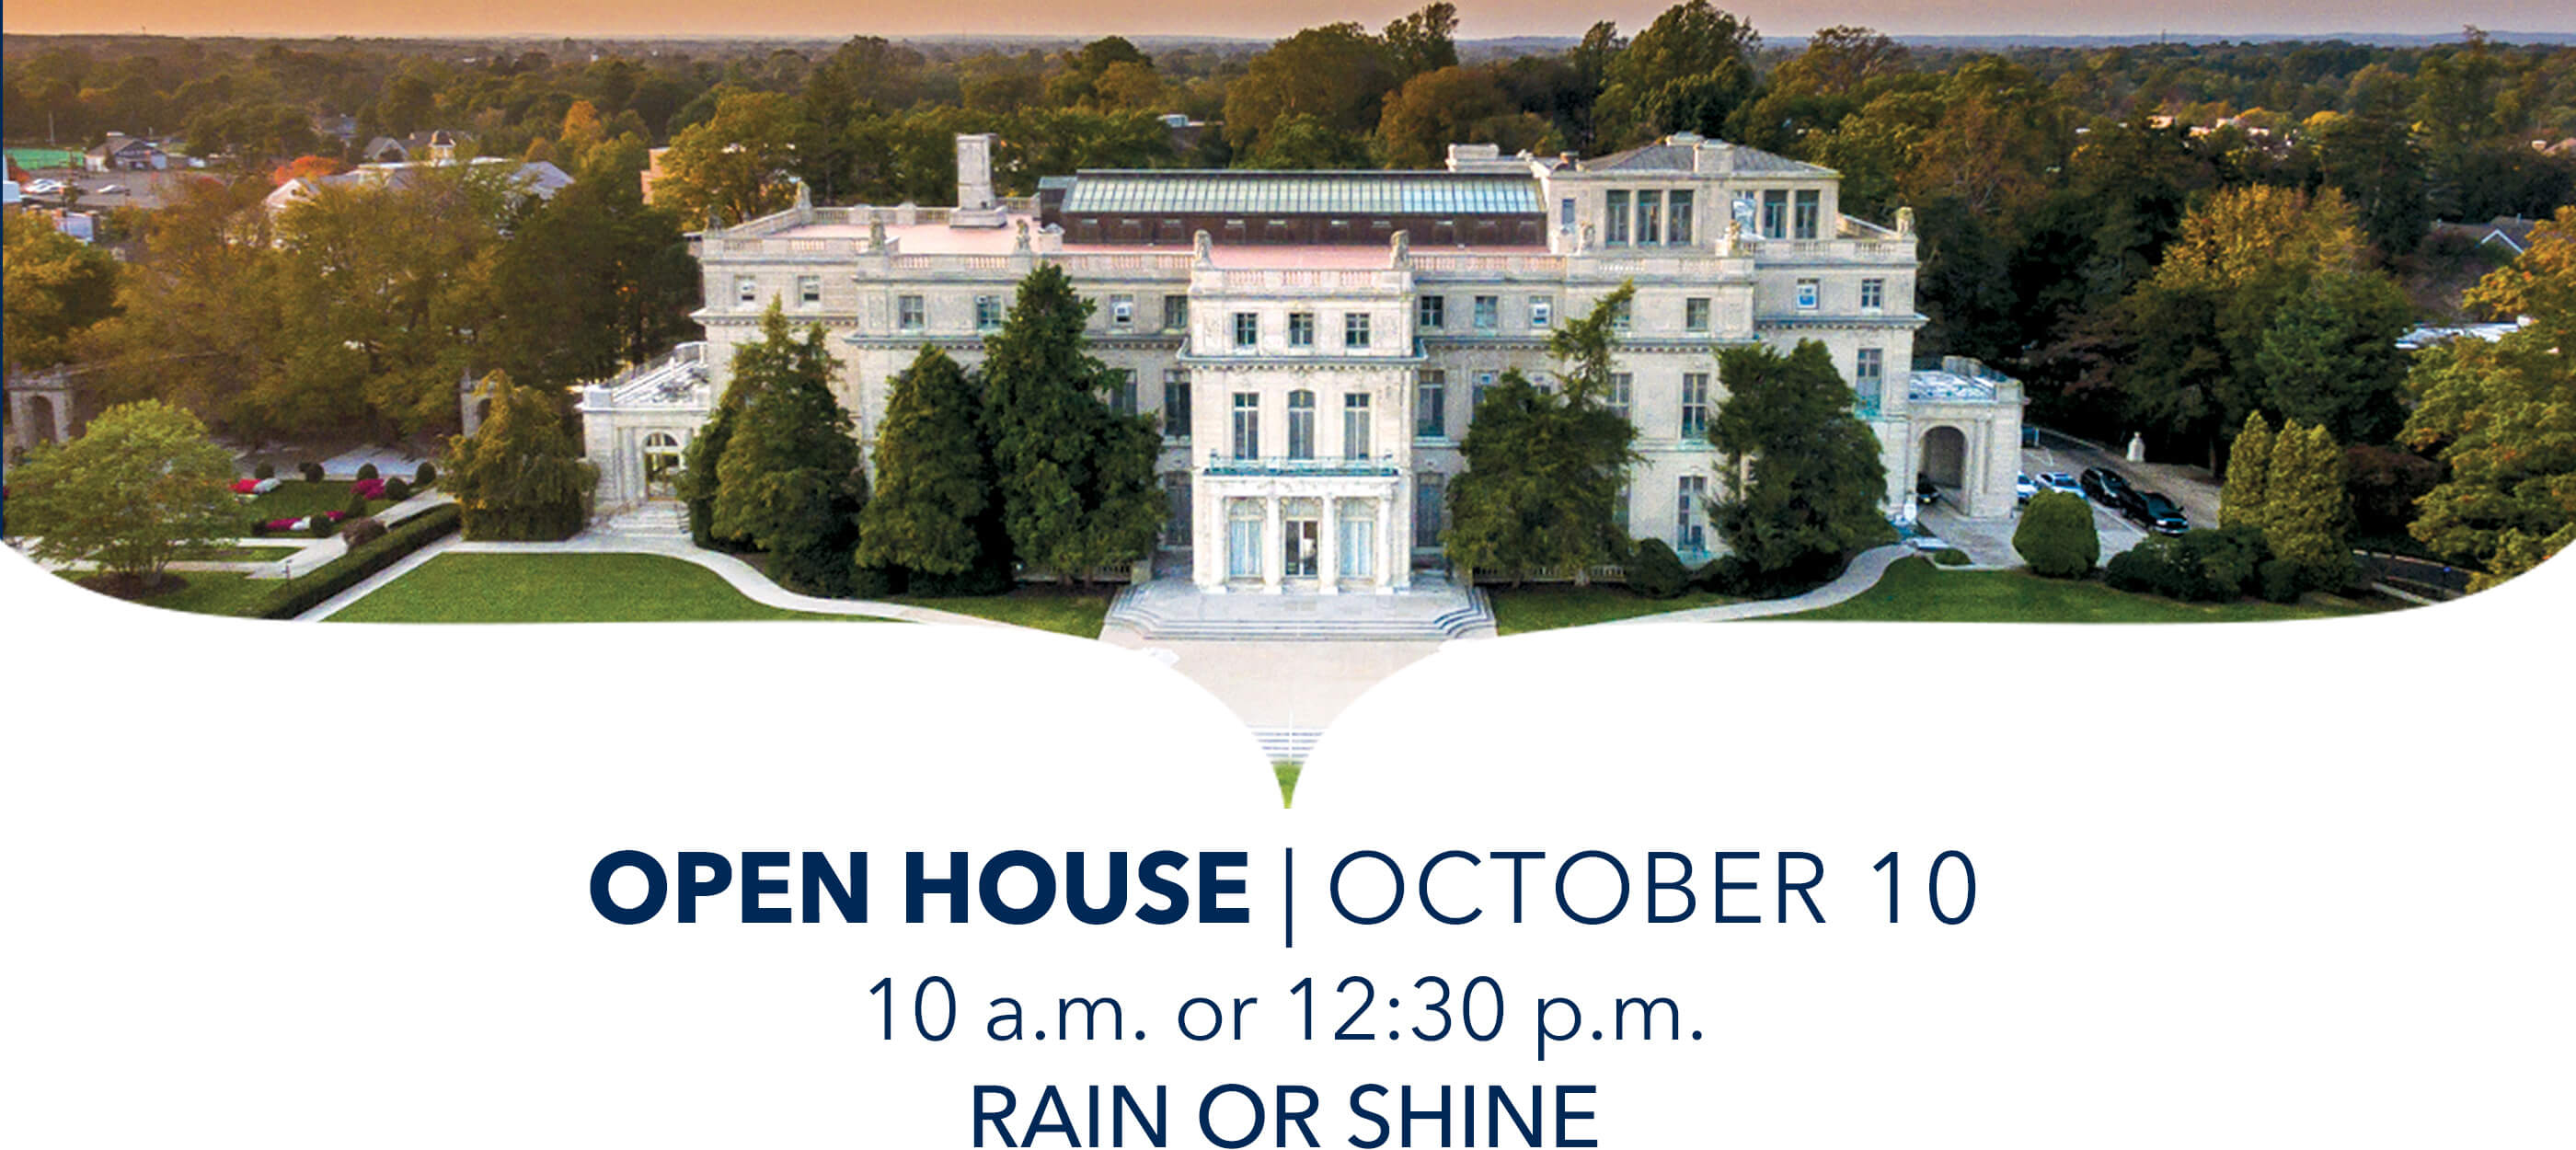 Open House October 10, 10 a.m. or 12:30 p.m., rain or shine